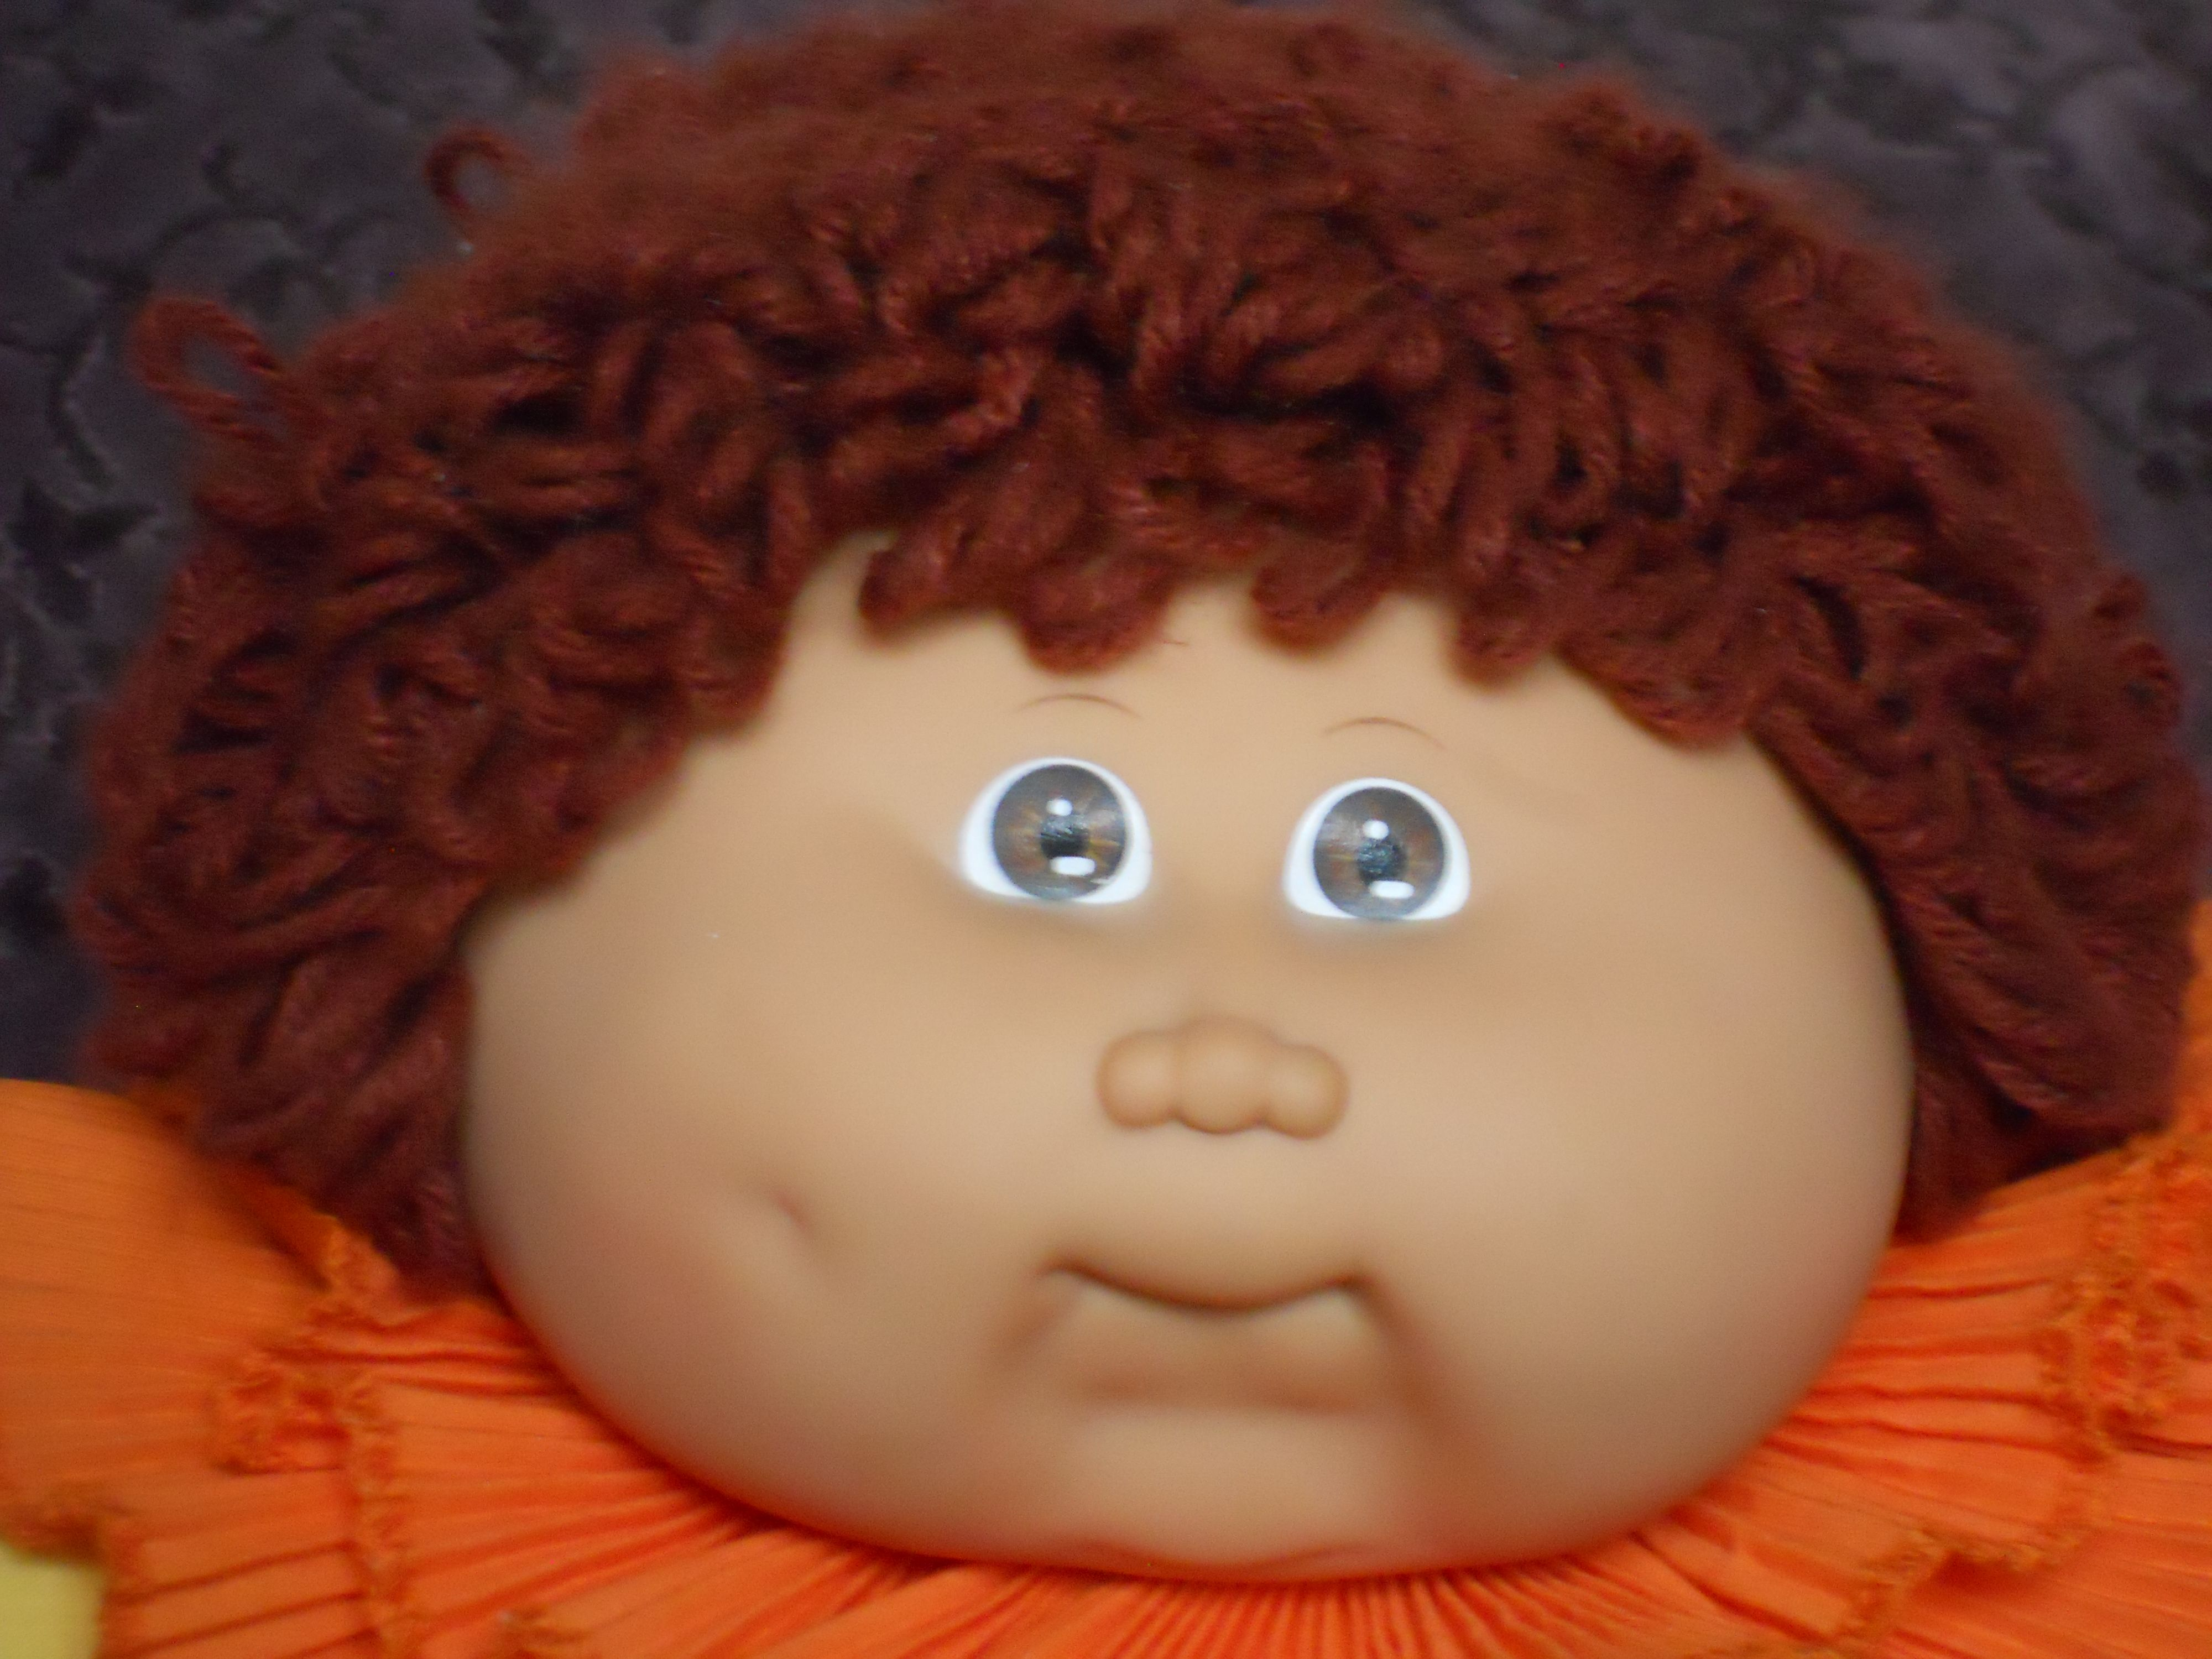 1986 Coleco Cabbage Patch Kids With Original Clown Outfit Factory Code Kt Head Mold 14 Cabbage Patch Dolls Cabbage Patch Kids Clown Clothes